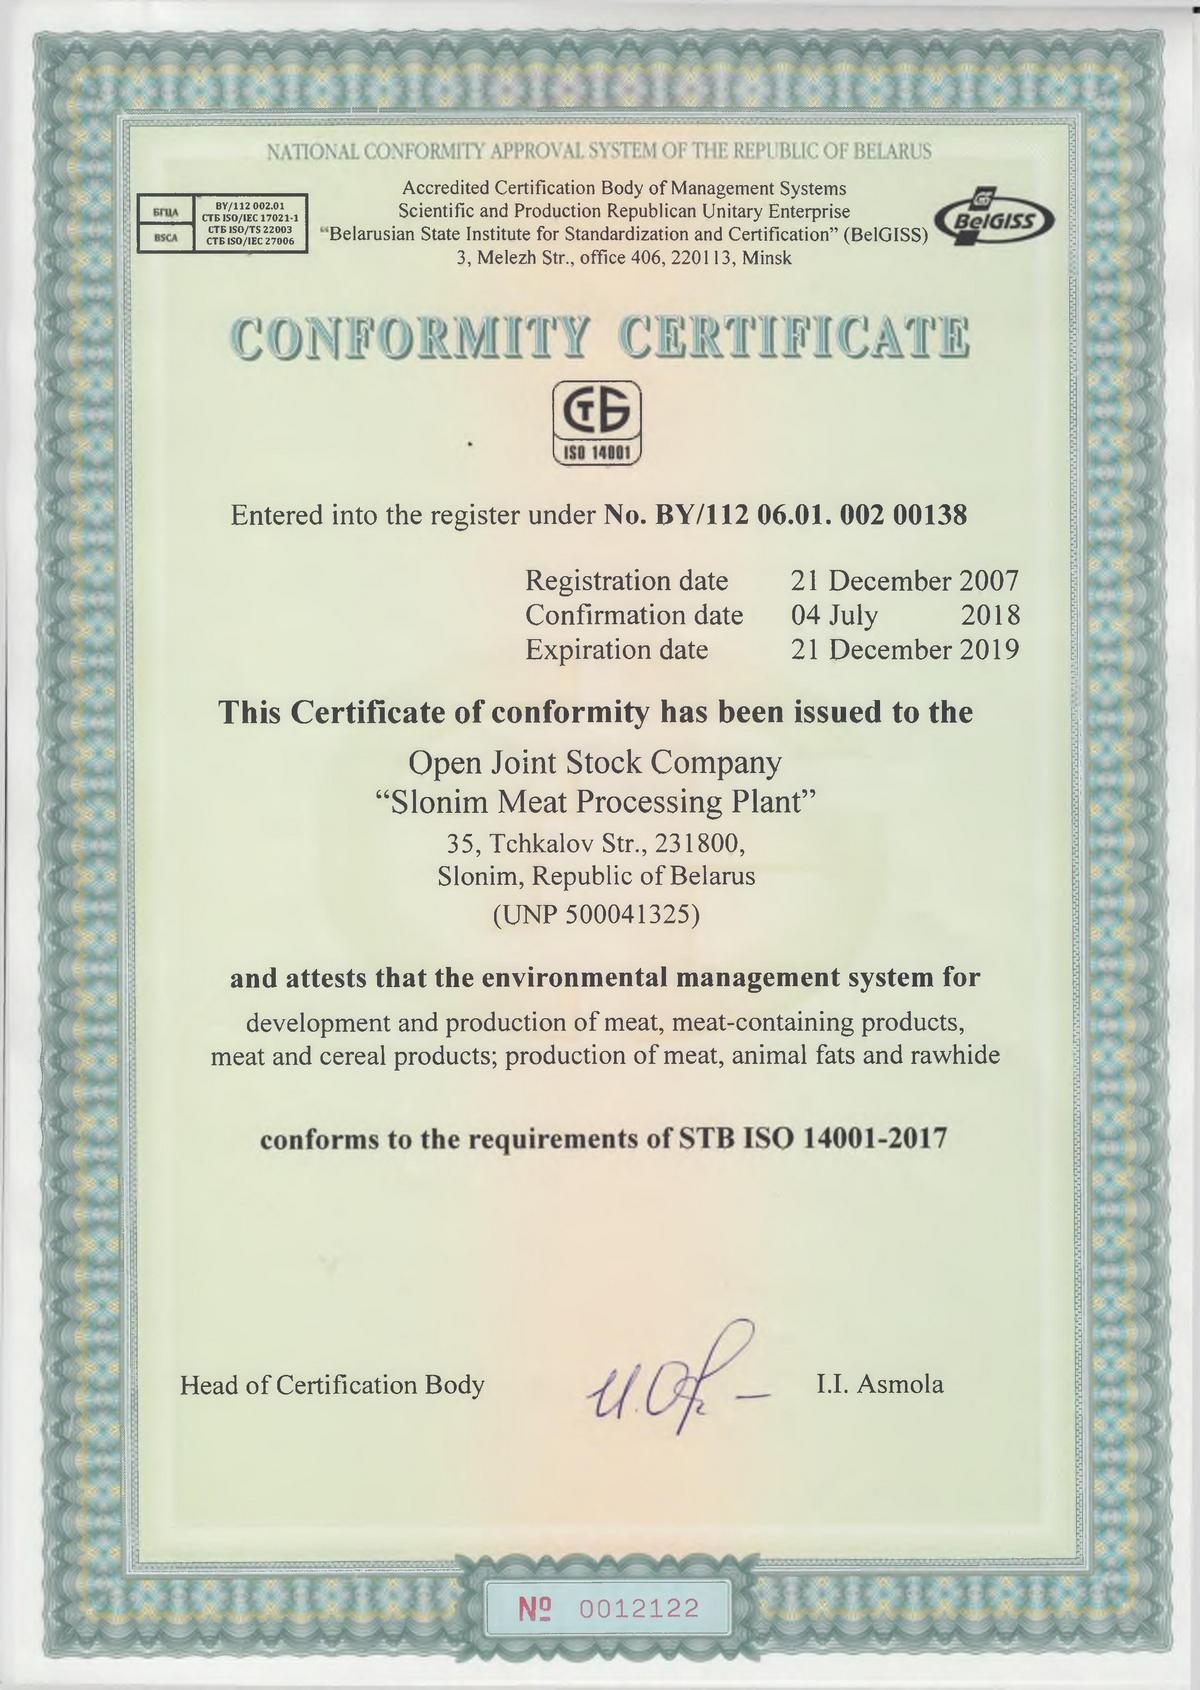 Conformity Certificate to the requirements of STB ISO 14001-2017